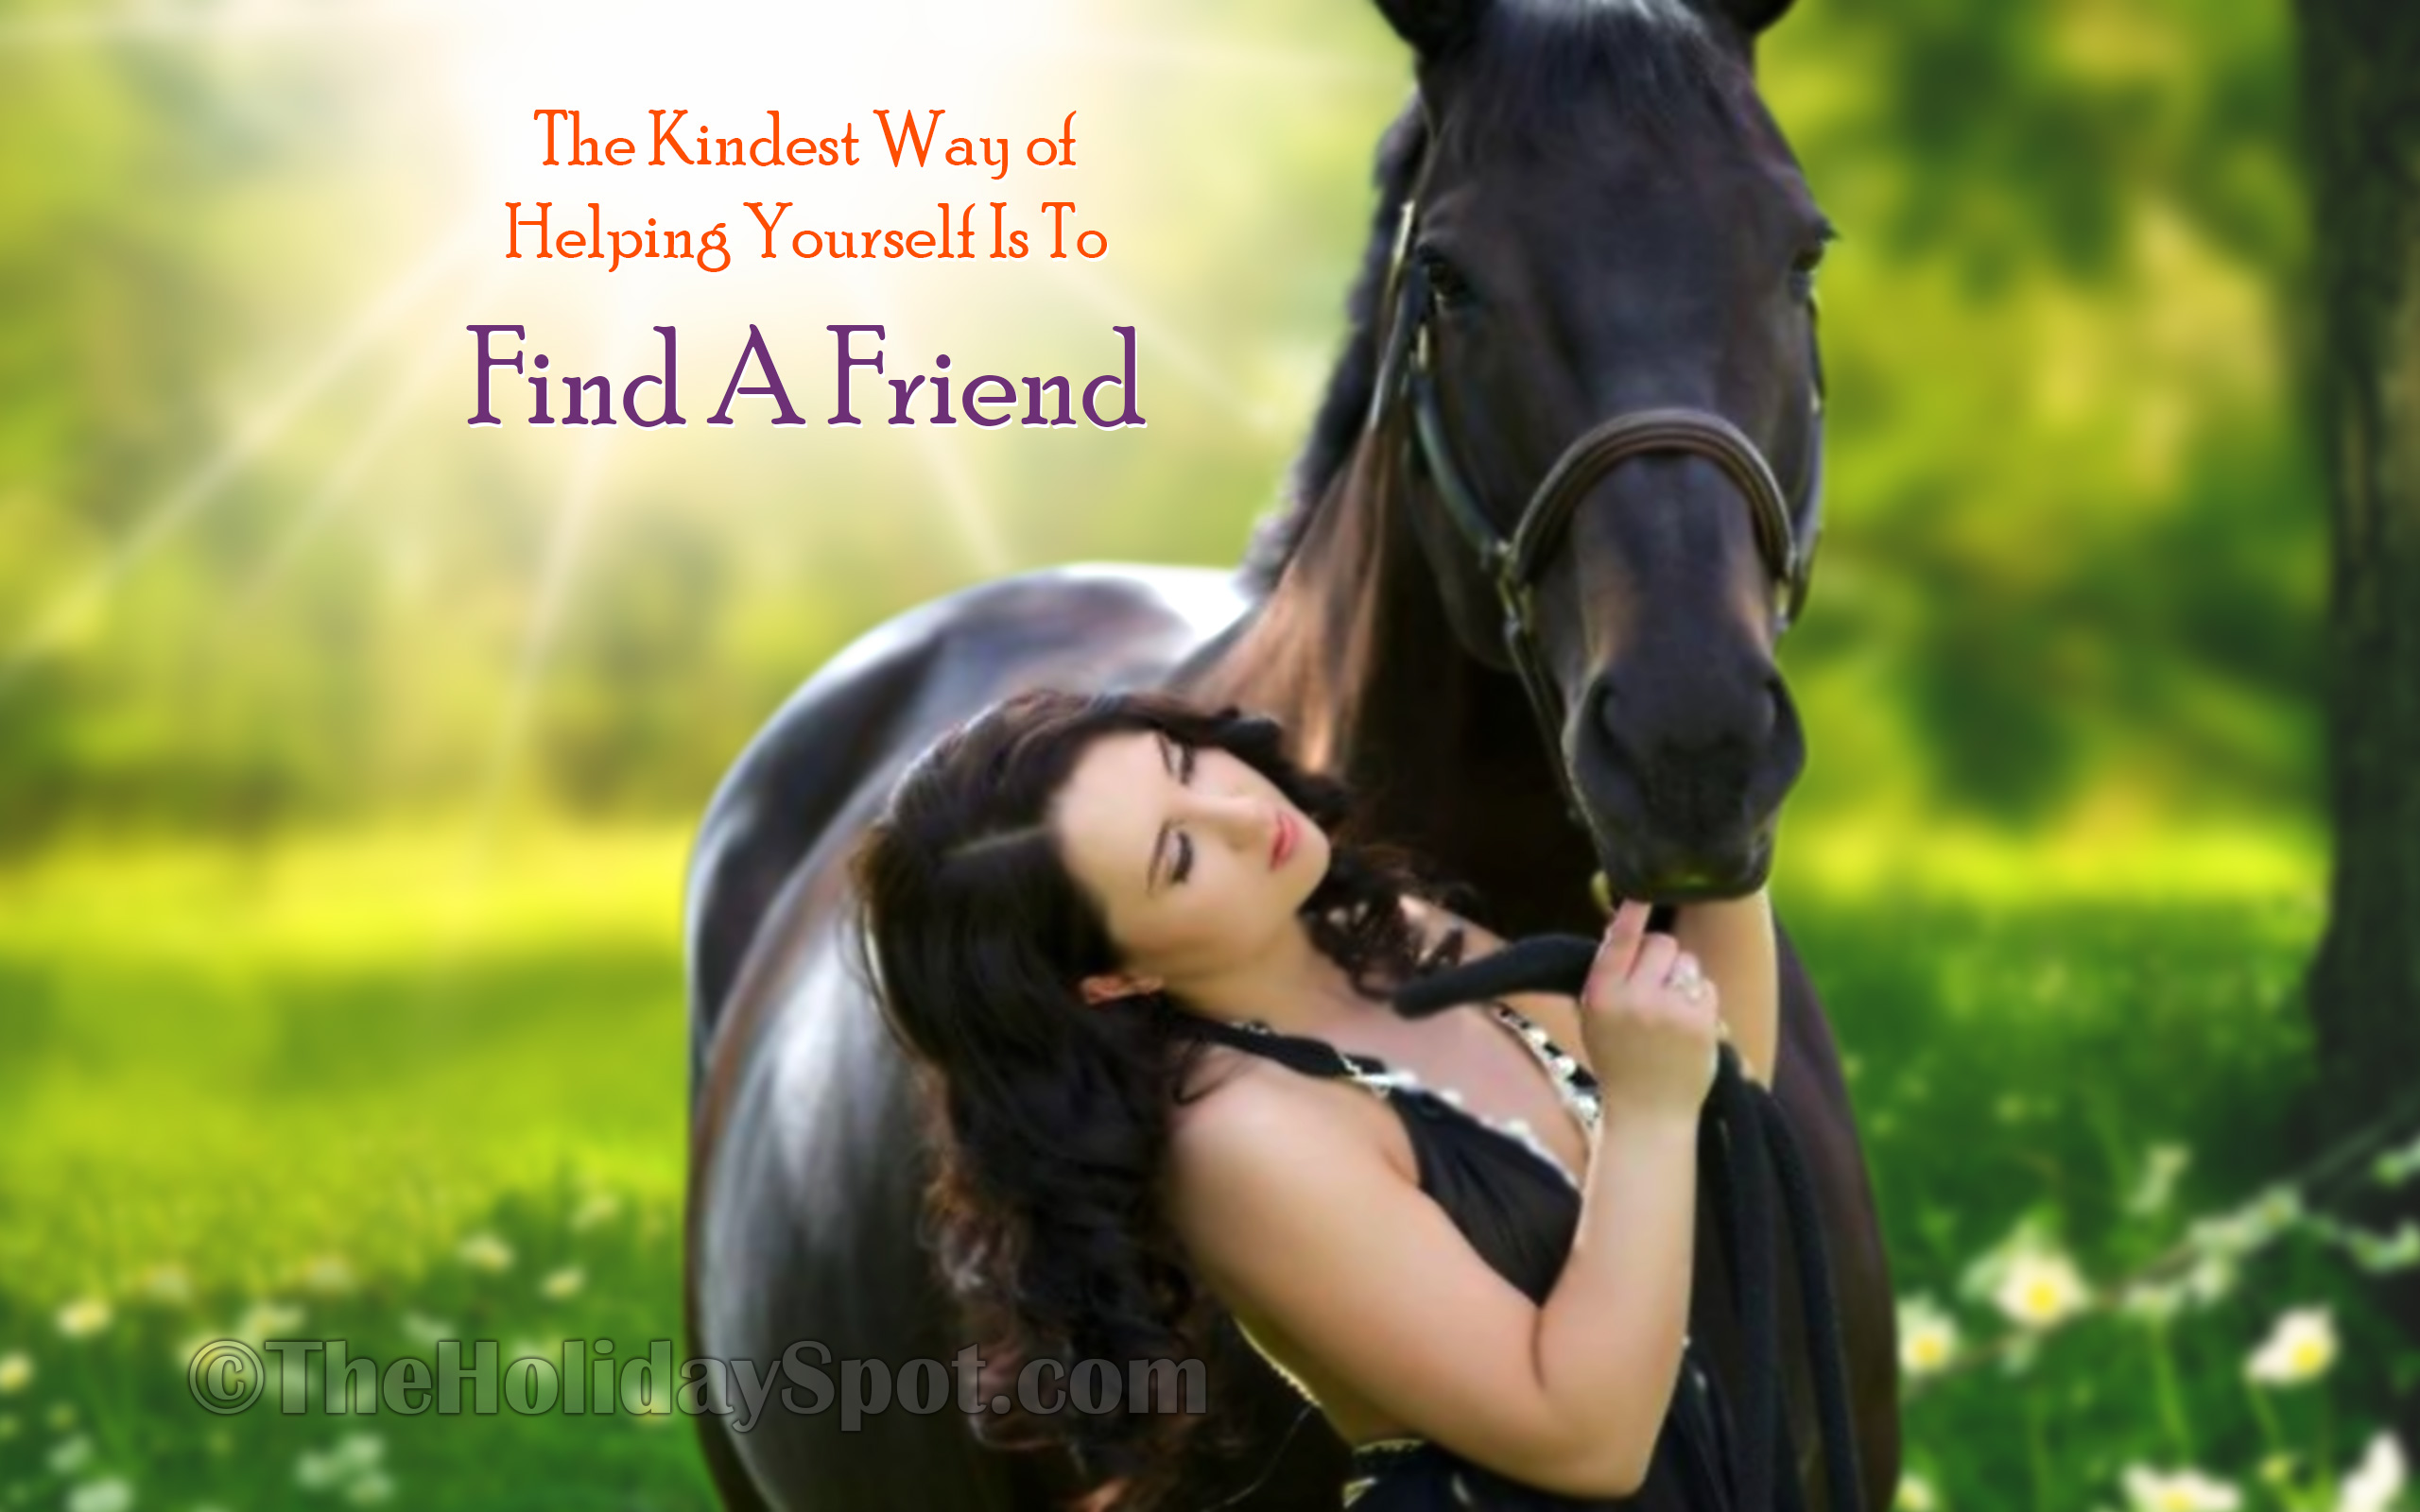 Friendship Wallpaper Of A Women And Horse